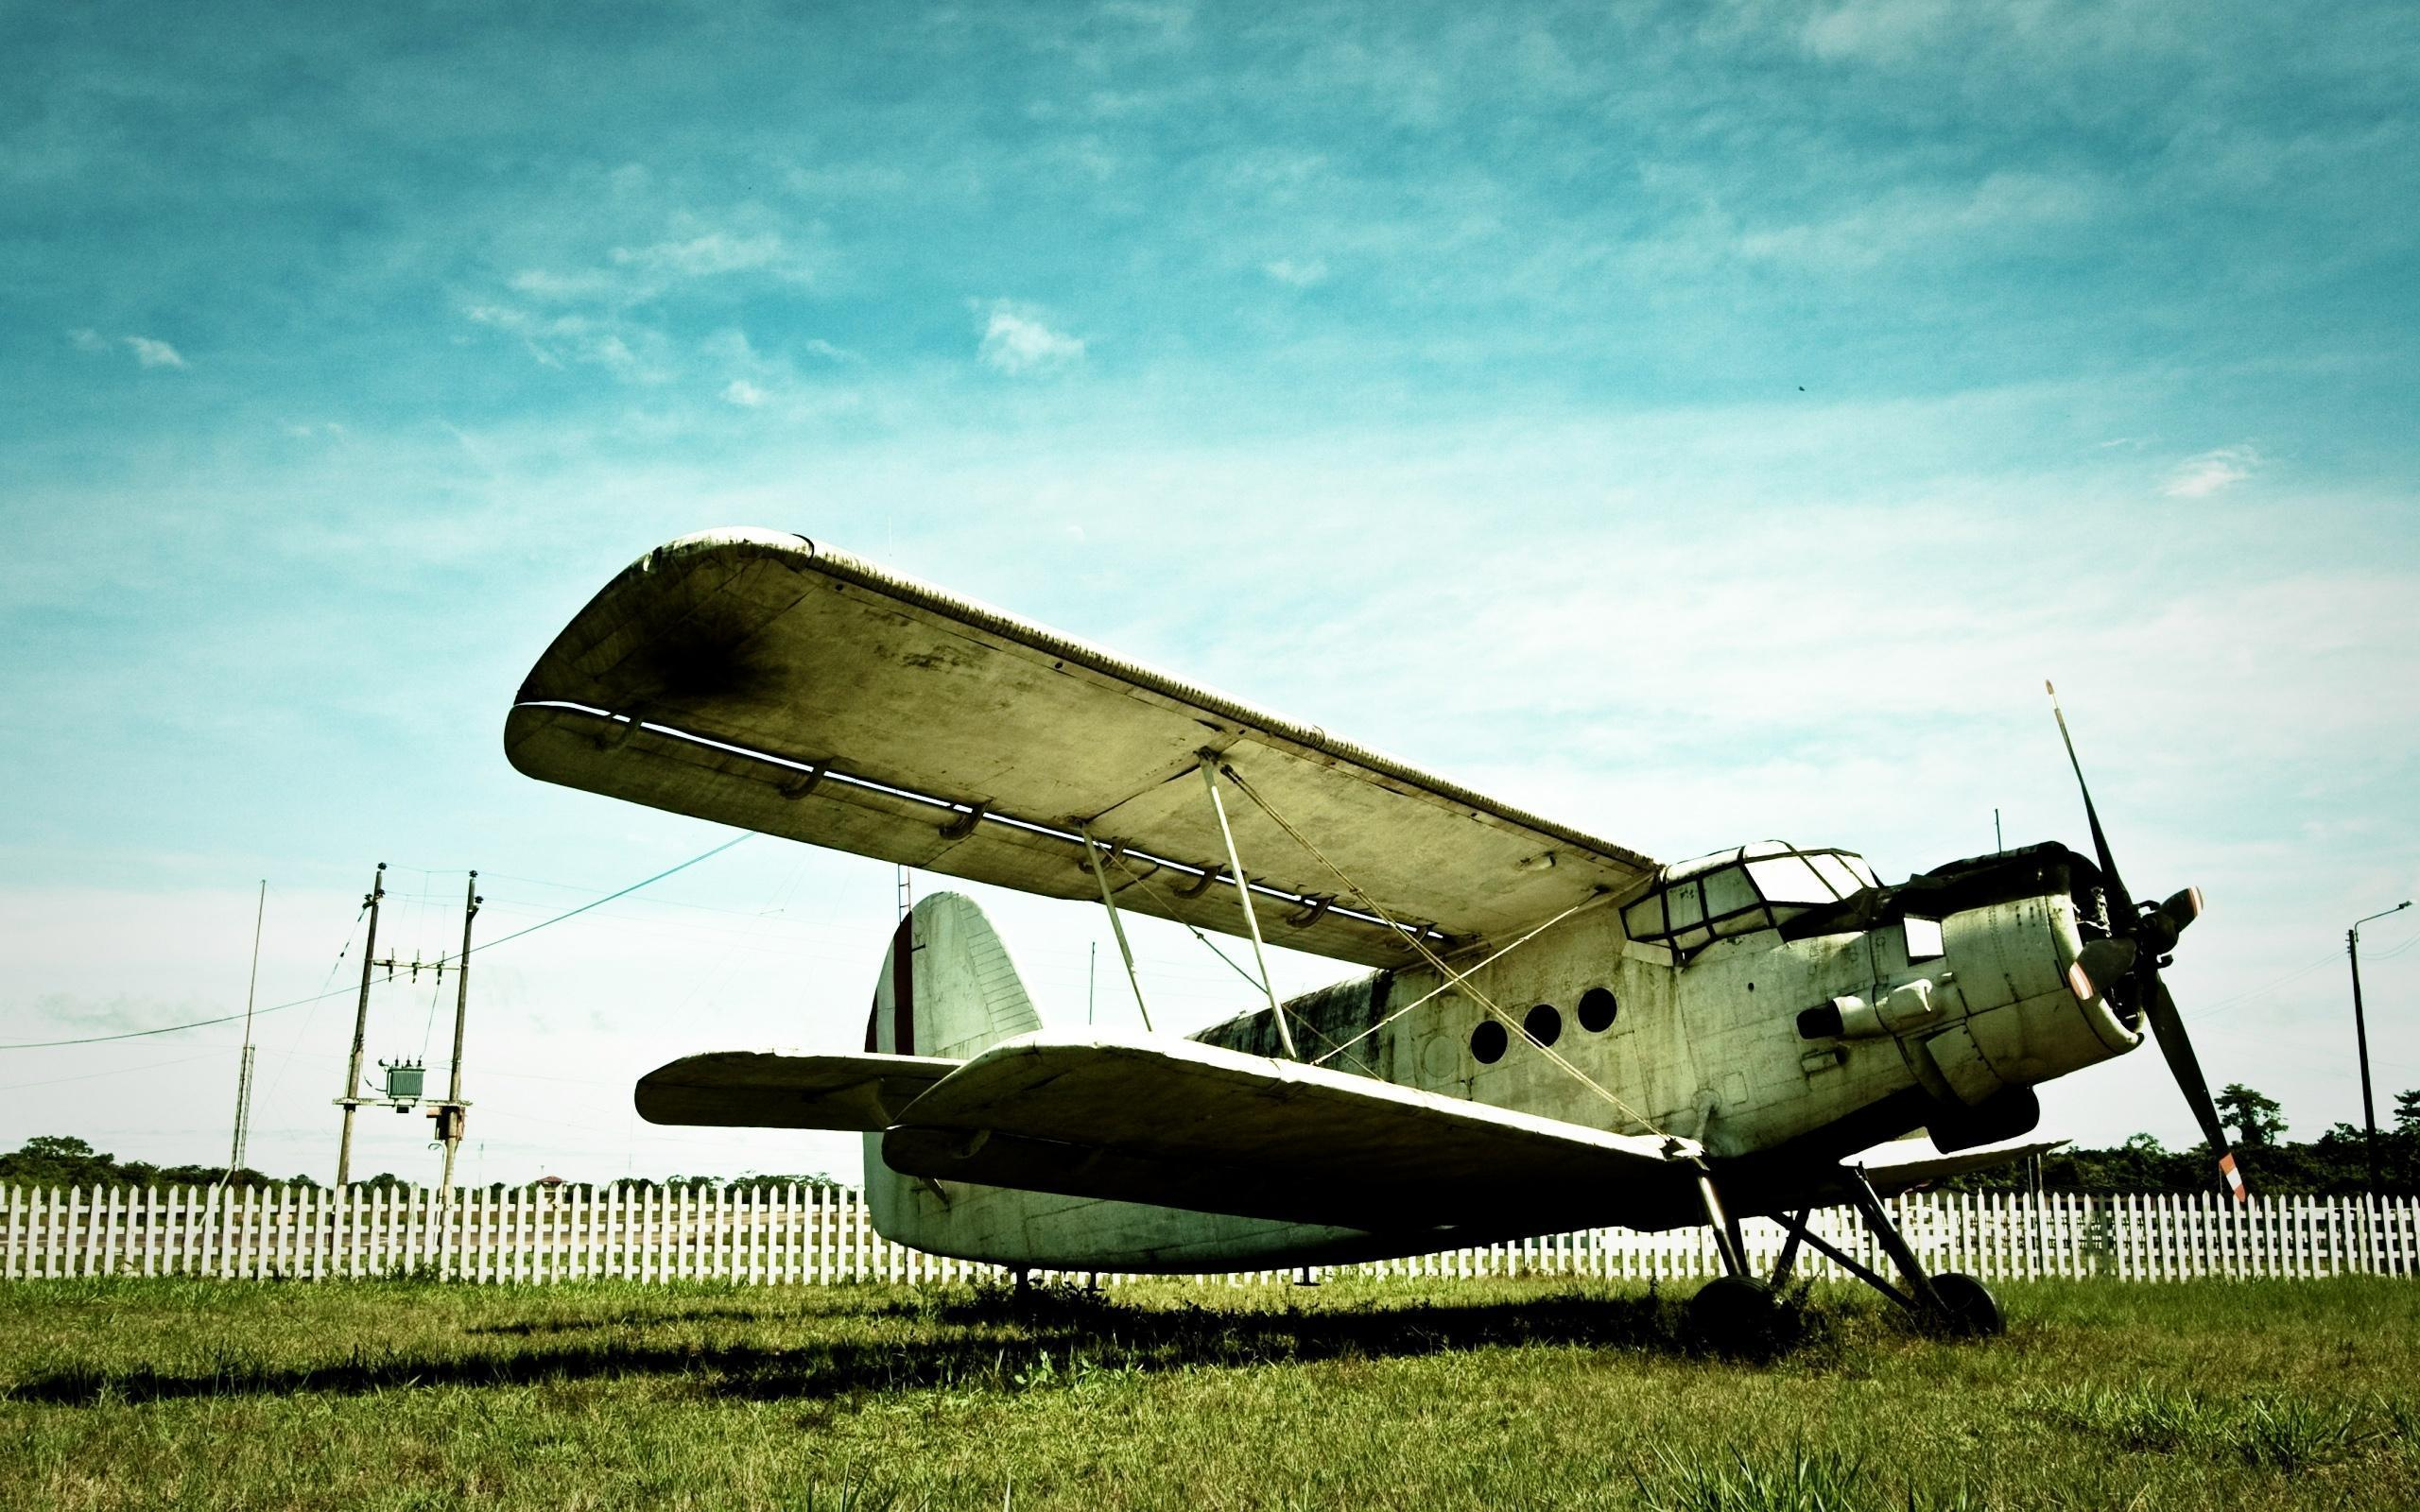 Vintage Airplane Wallpapers Wallpaper Cave